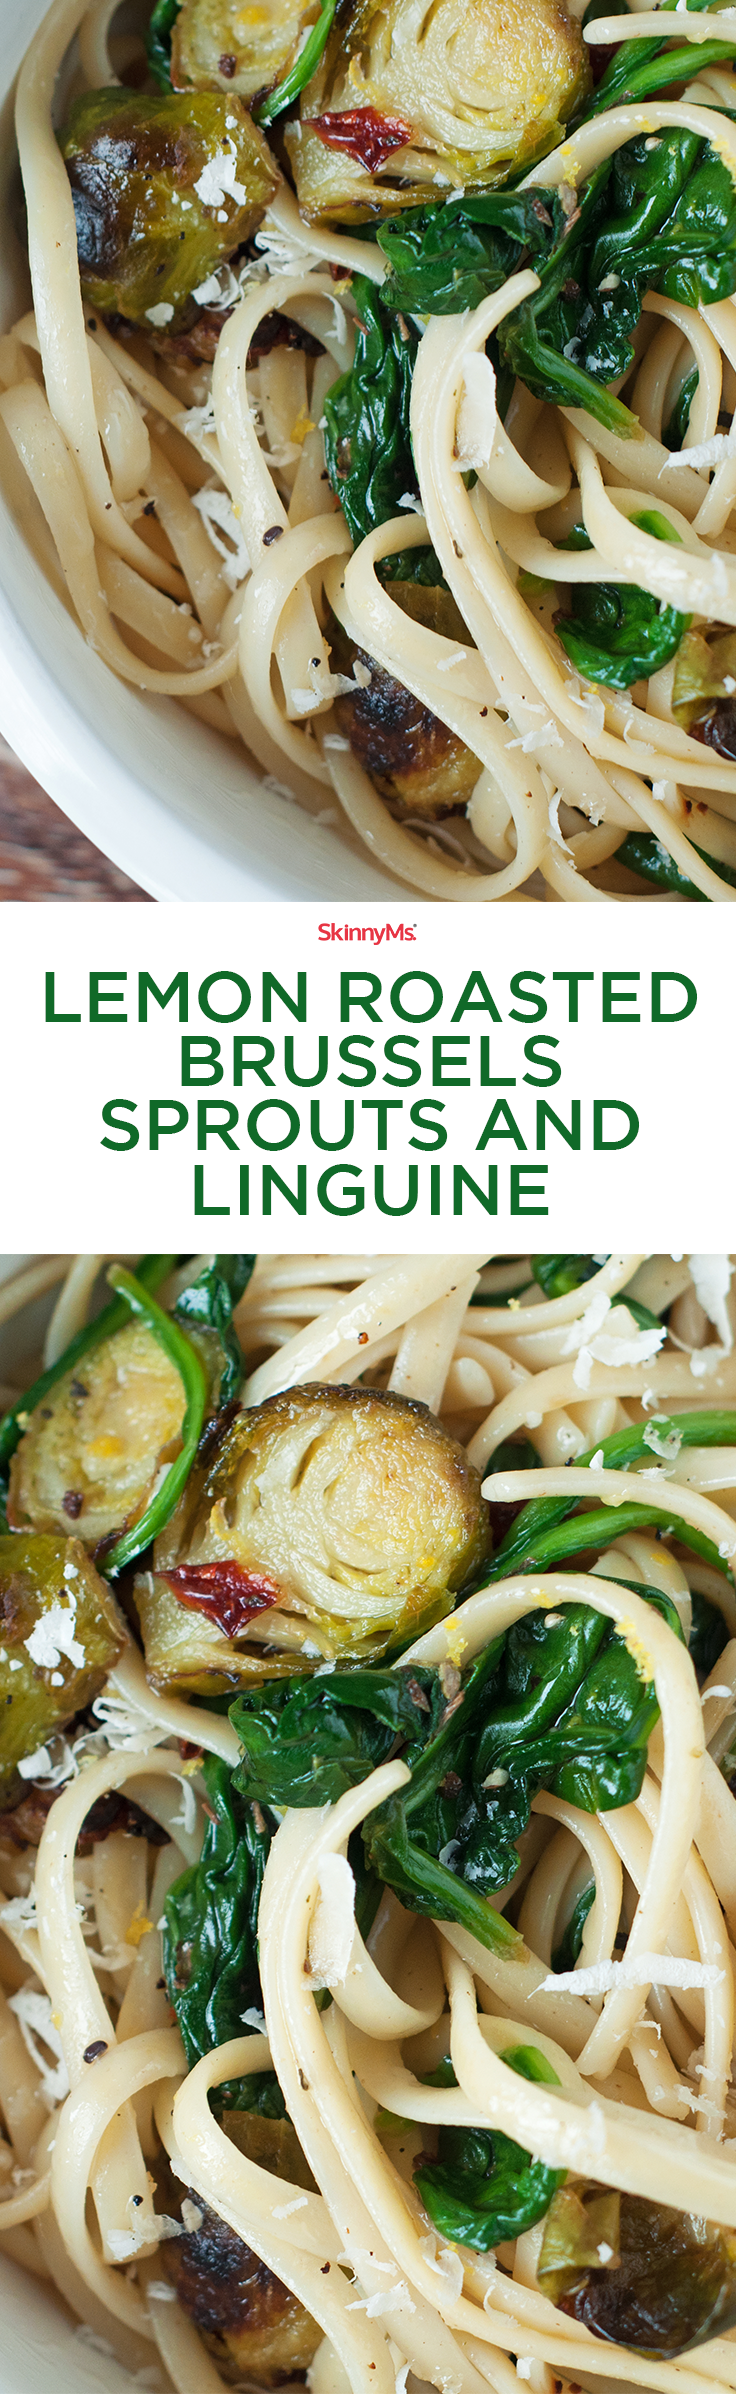 Lemon Roasted Brussels Sprouts and Linguine